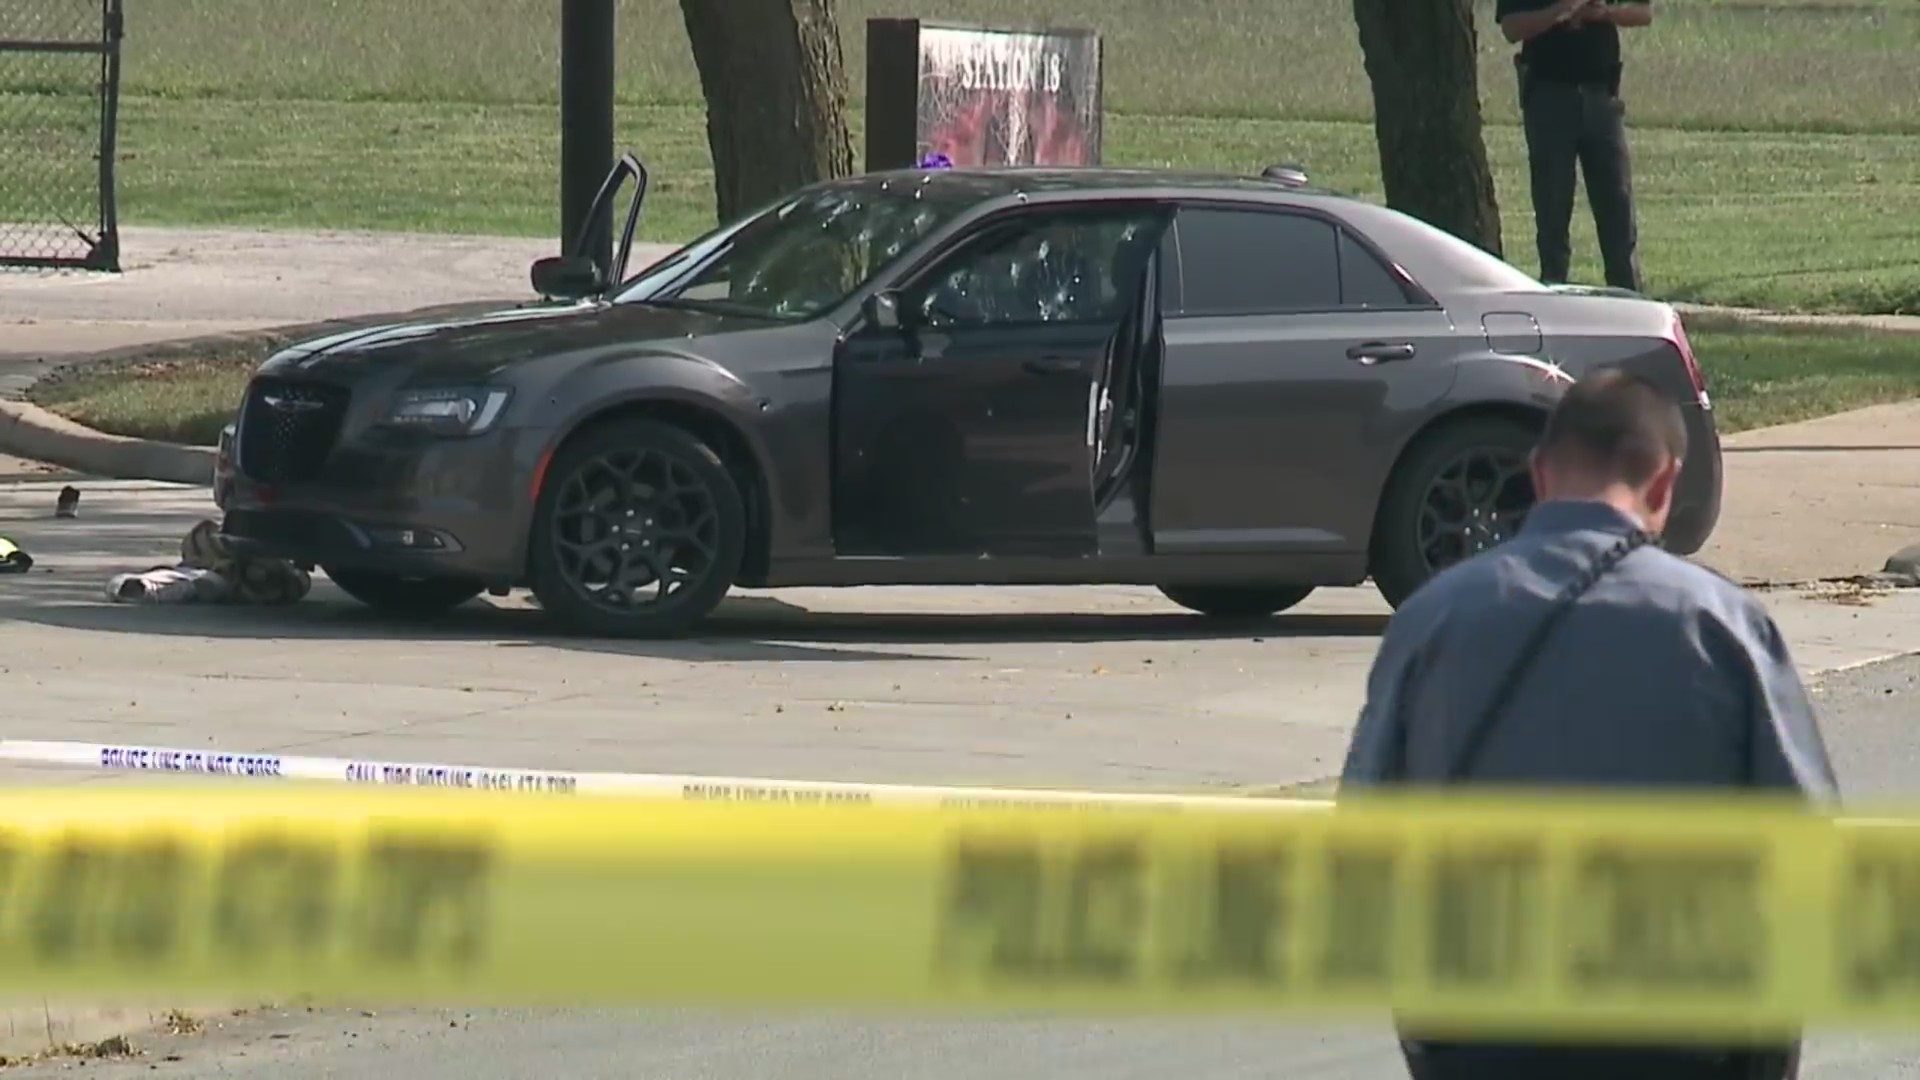 Picture of car involved in triple shooting